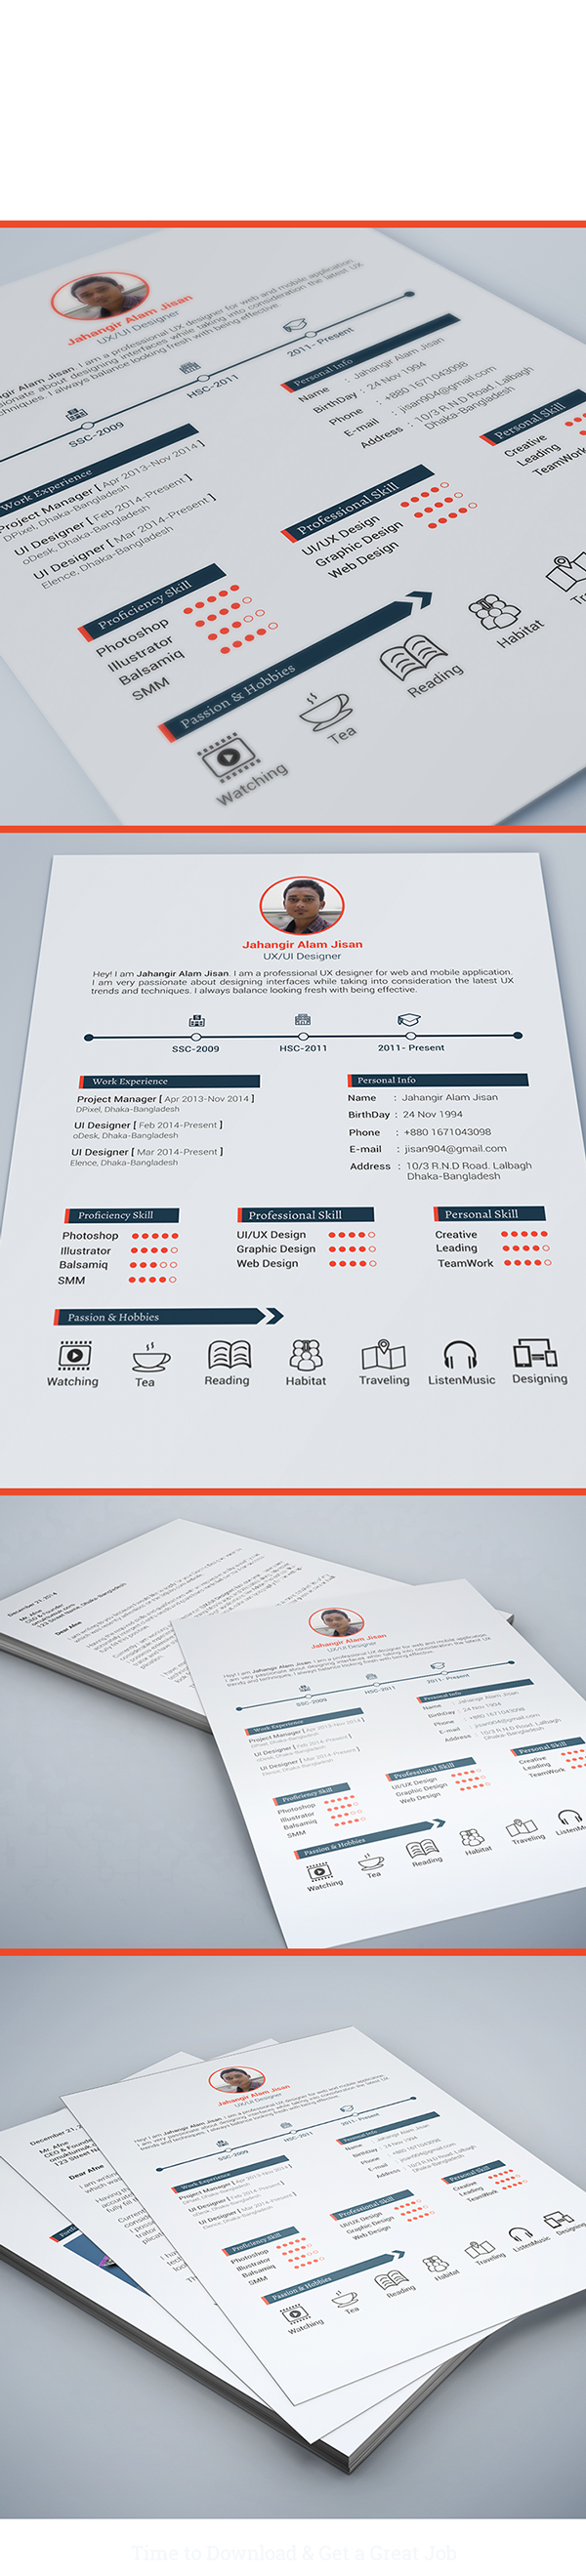 free resume template 3 page on behance - Free Resume Fonts